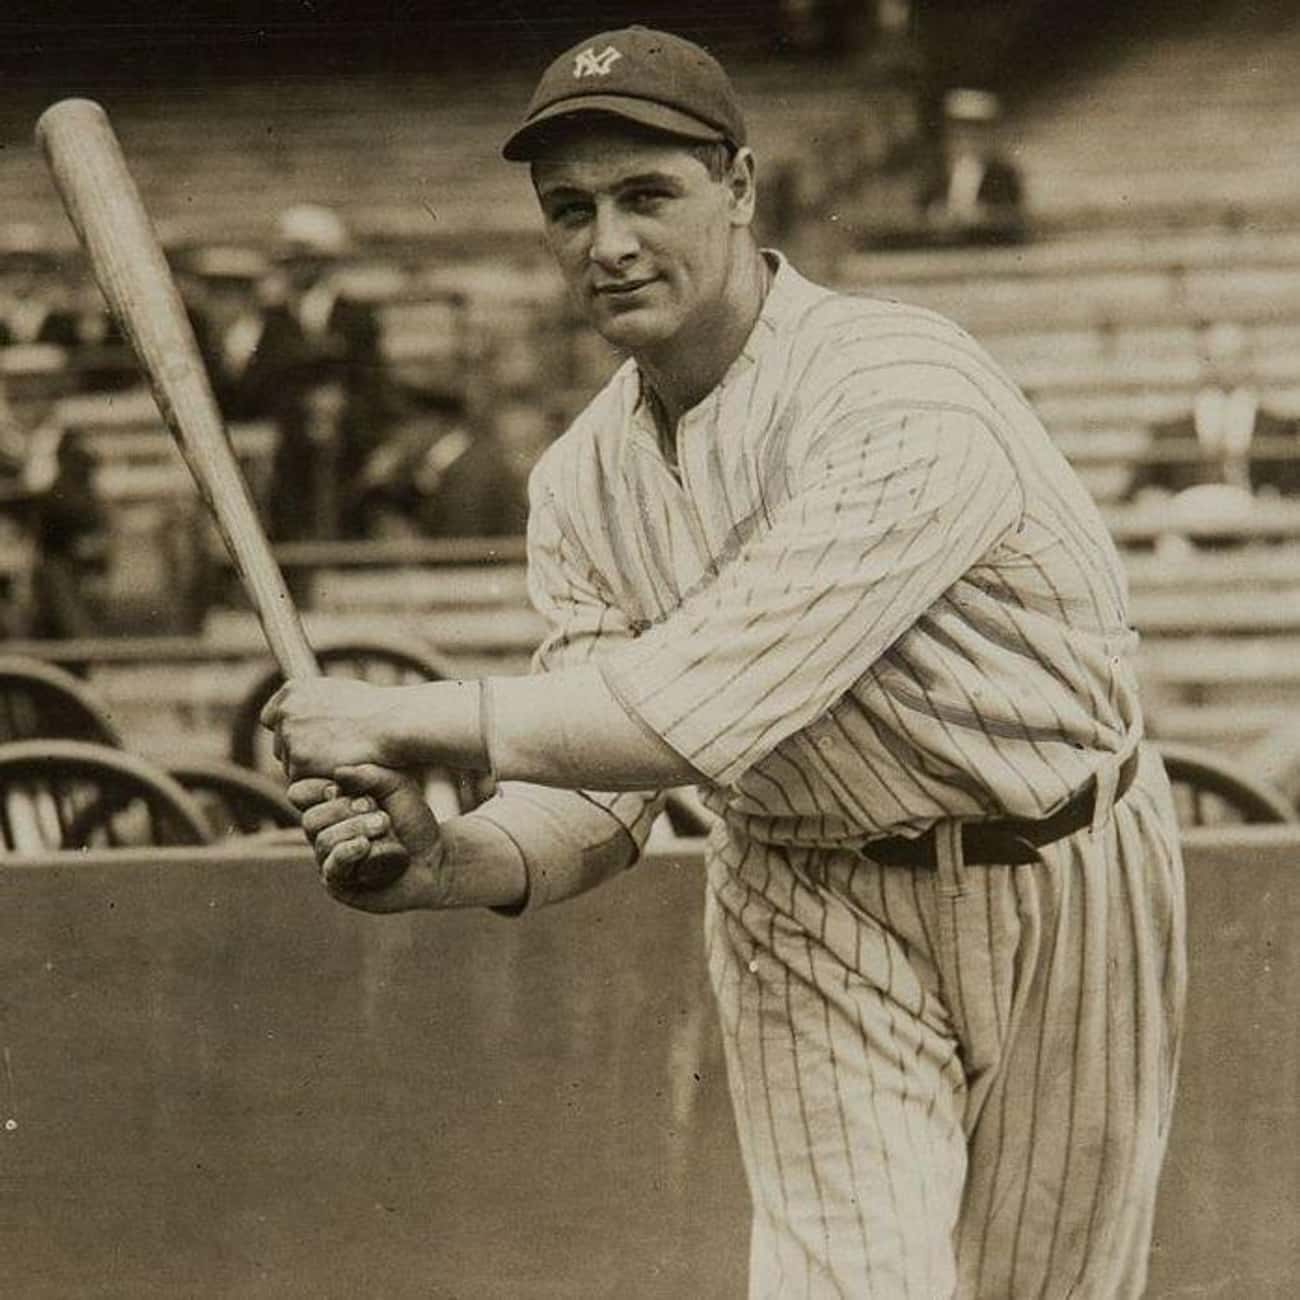 Lou Gehrig is listed (or ranked) 2 on the list 25 Professional Athletes Who Died Young